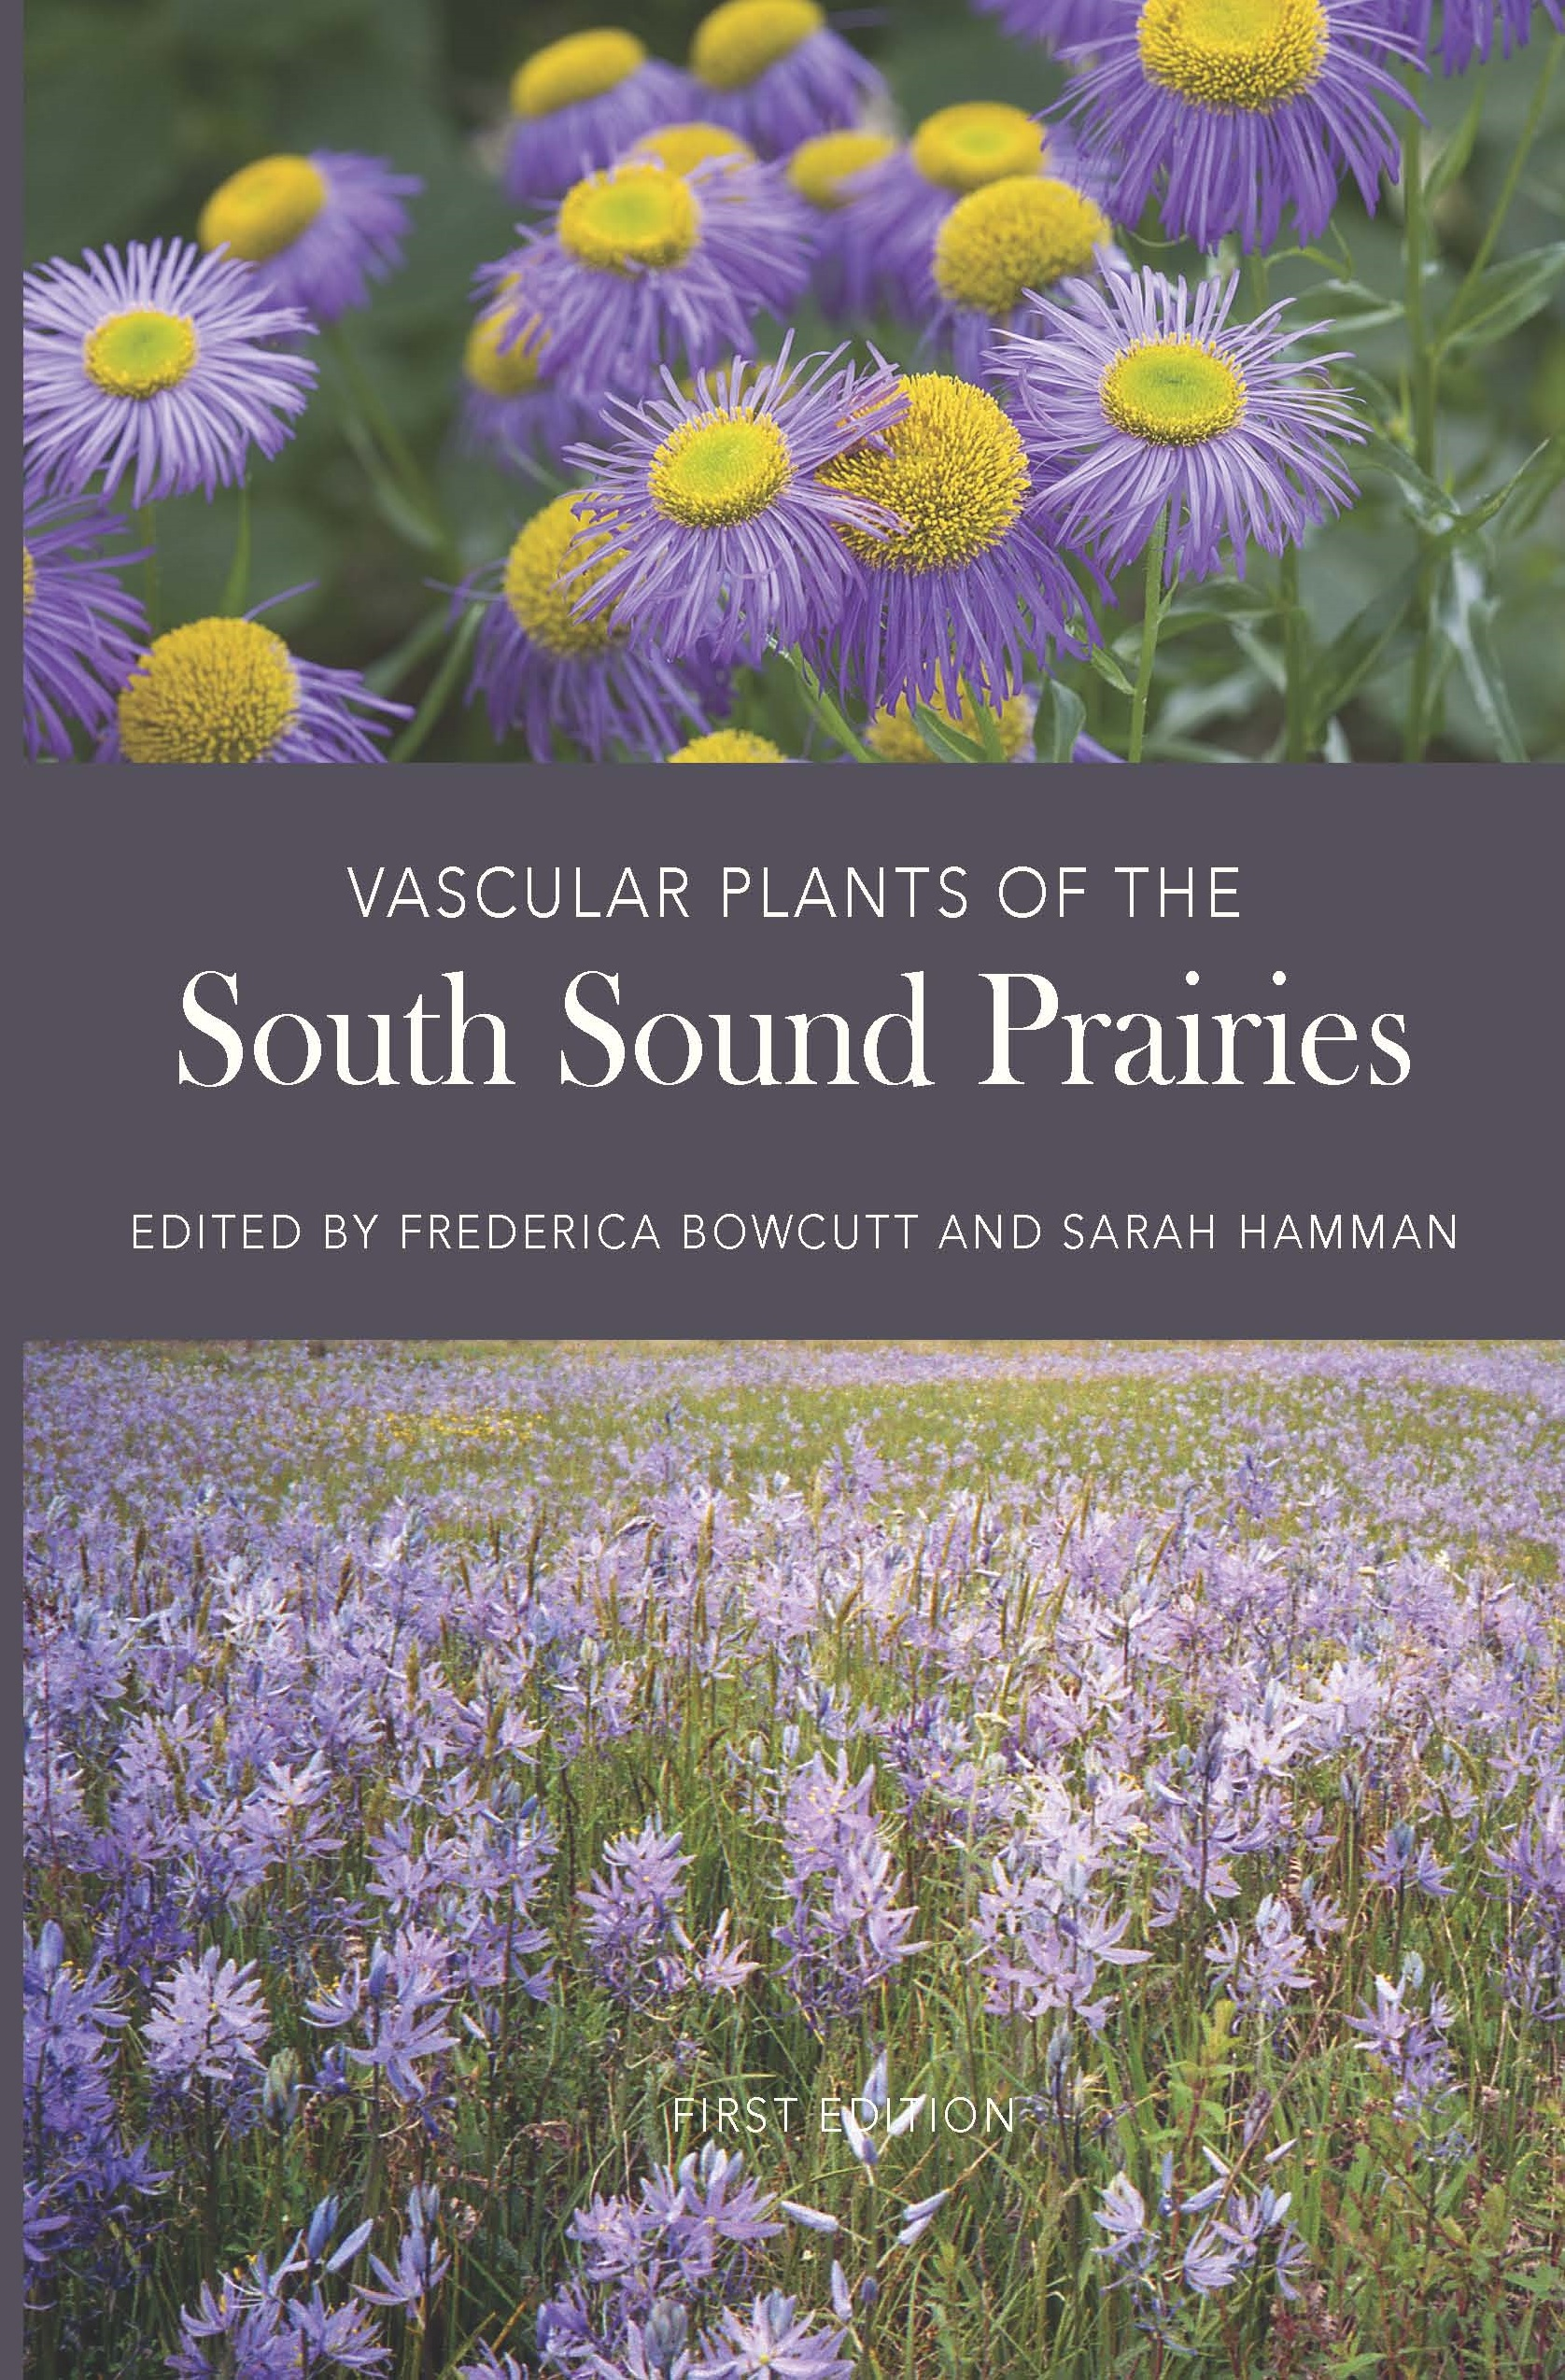 Vascular Plants of the South Sound prairies